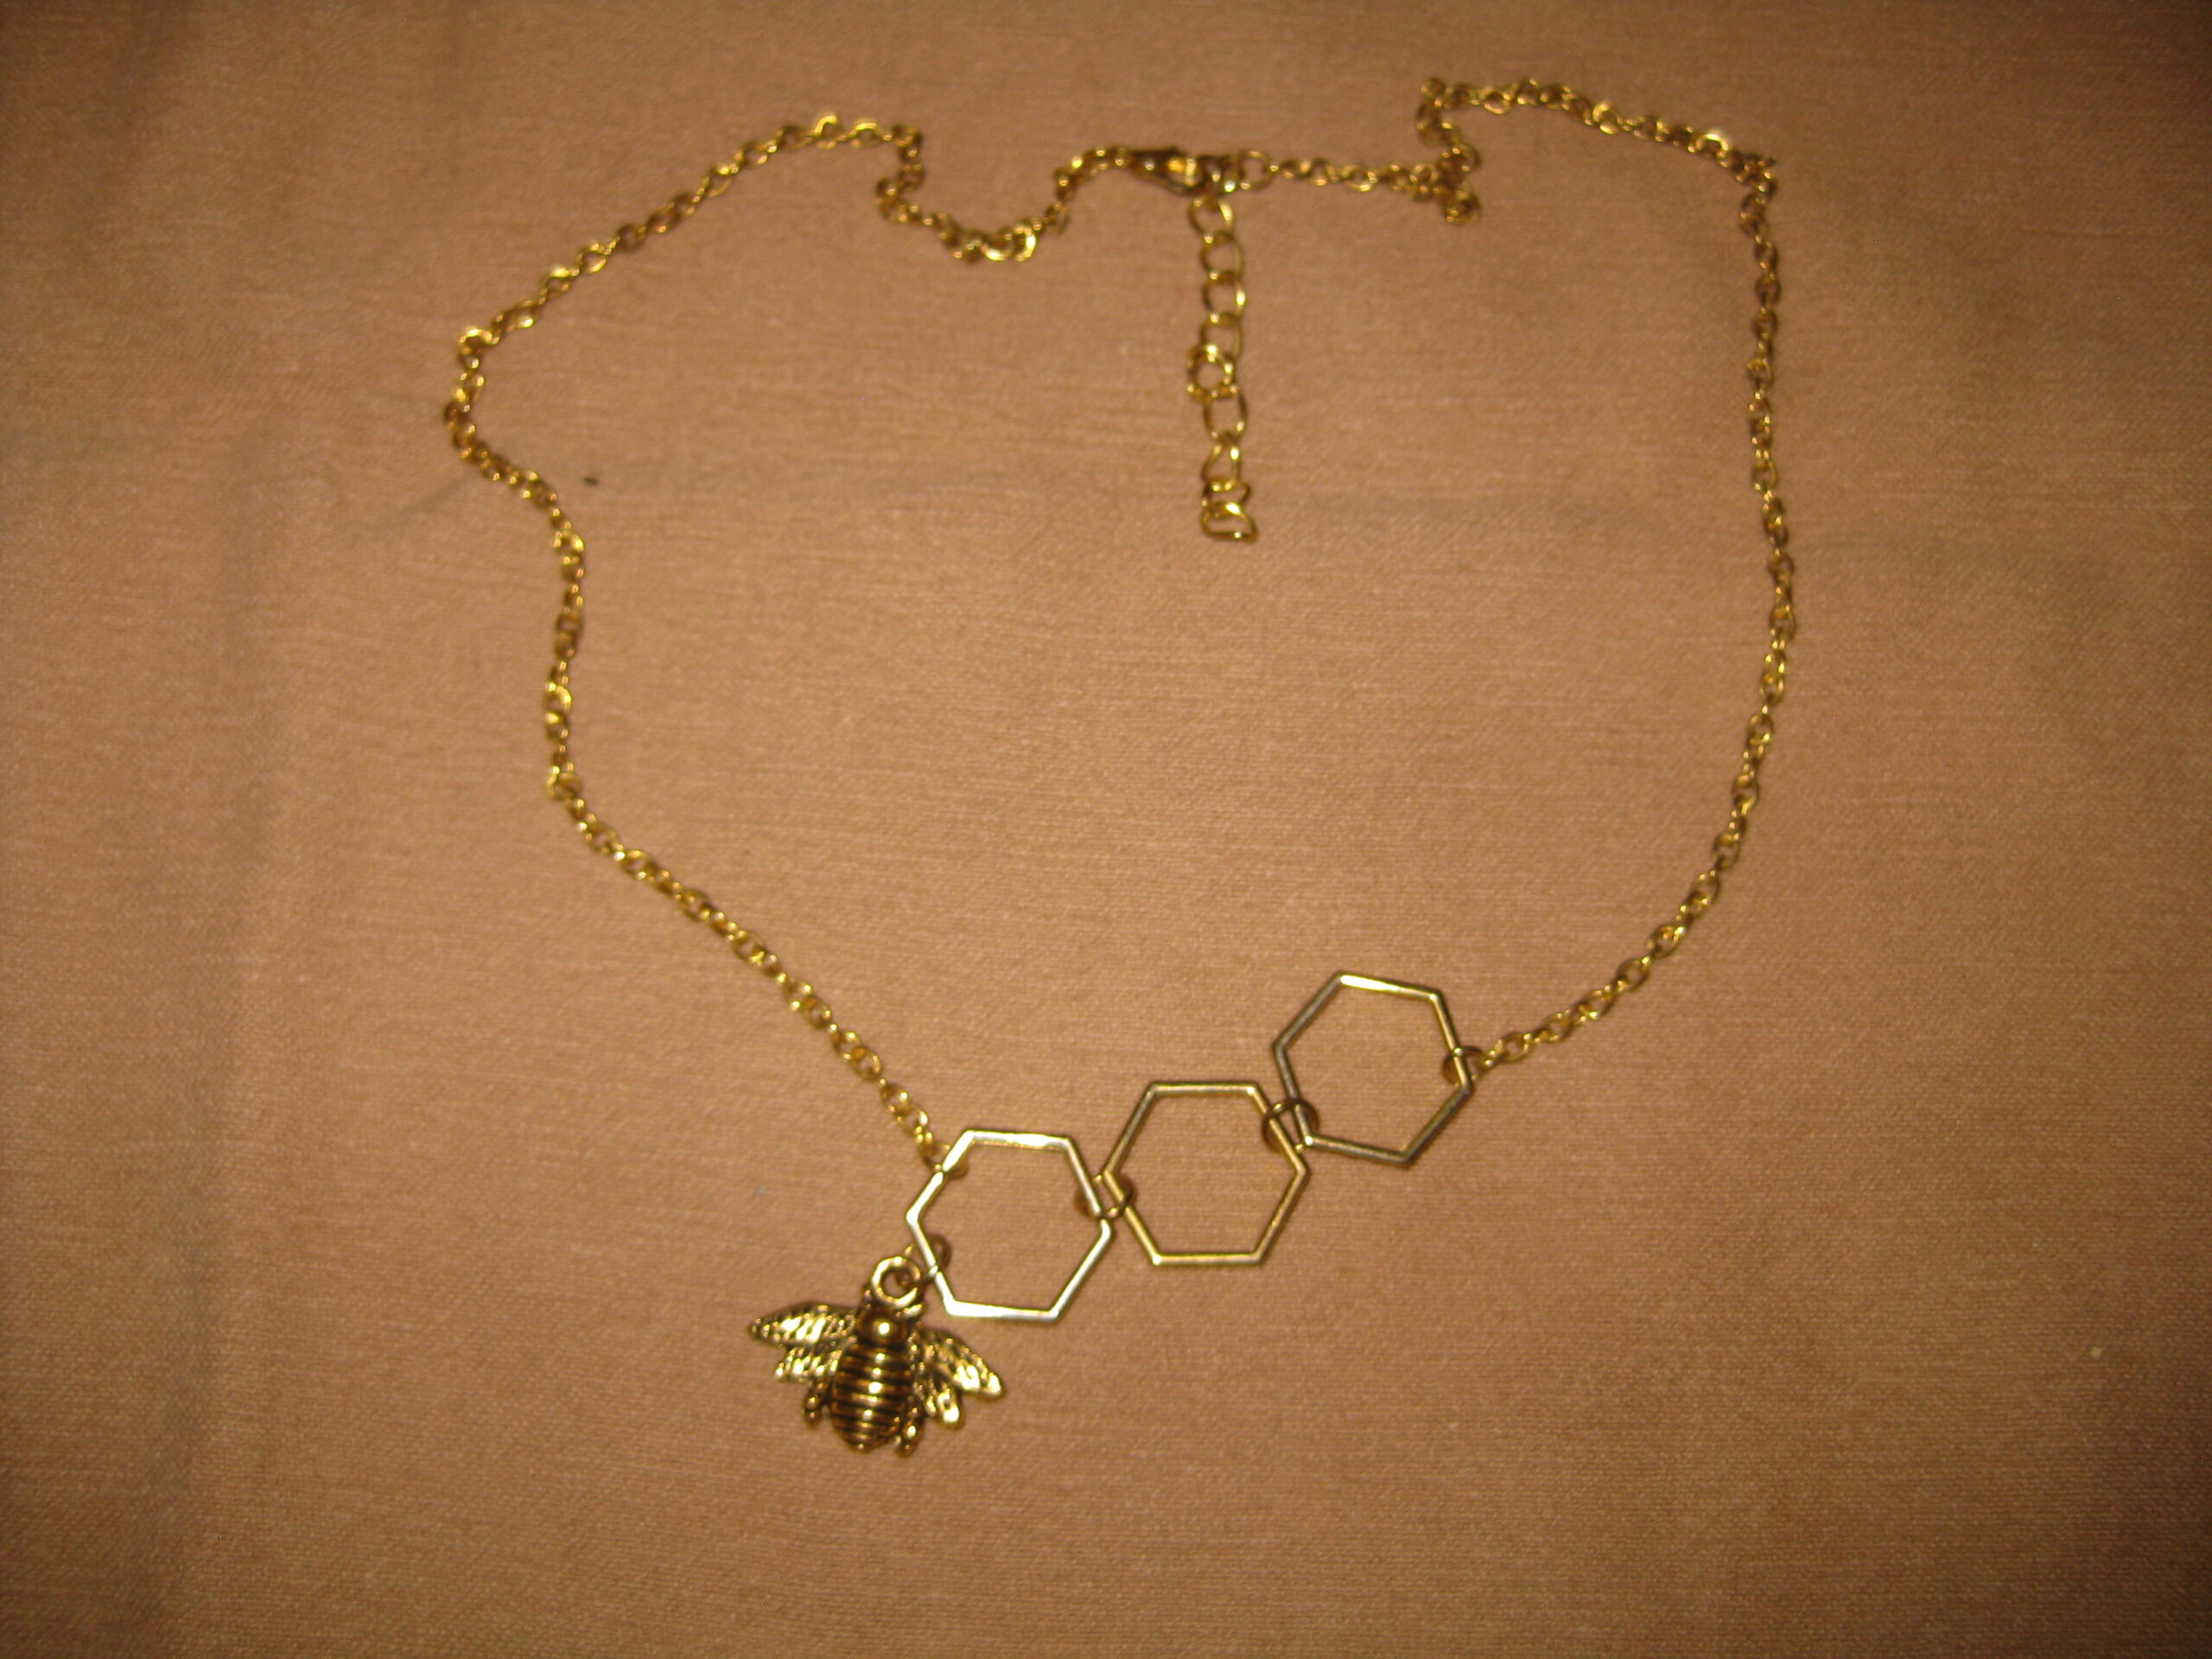 Necklace with a bee theme